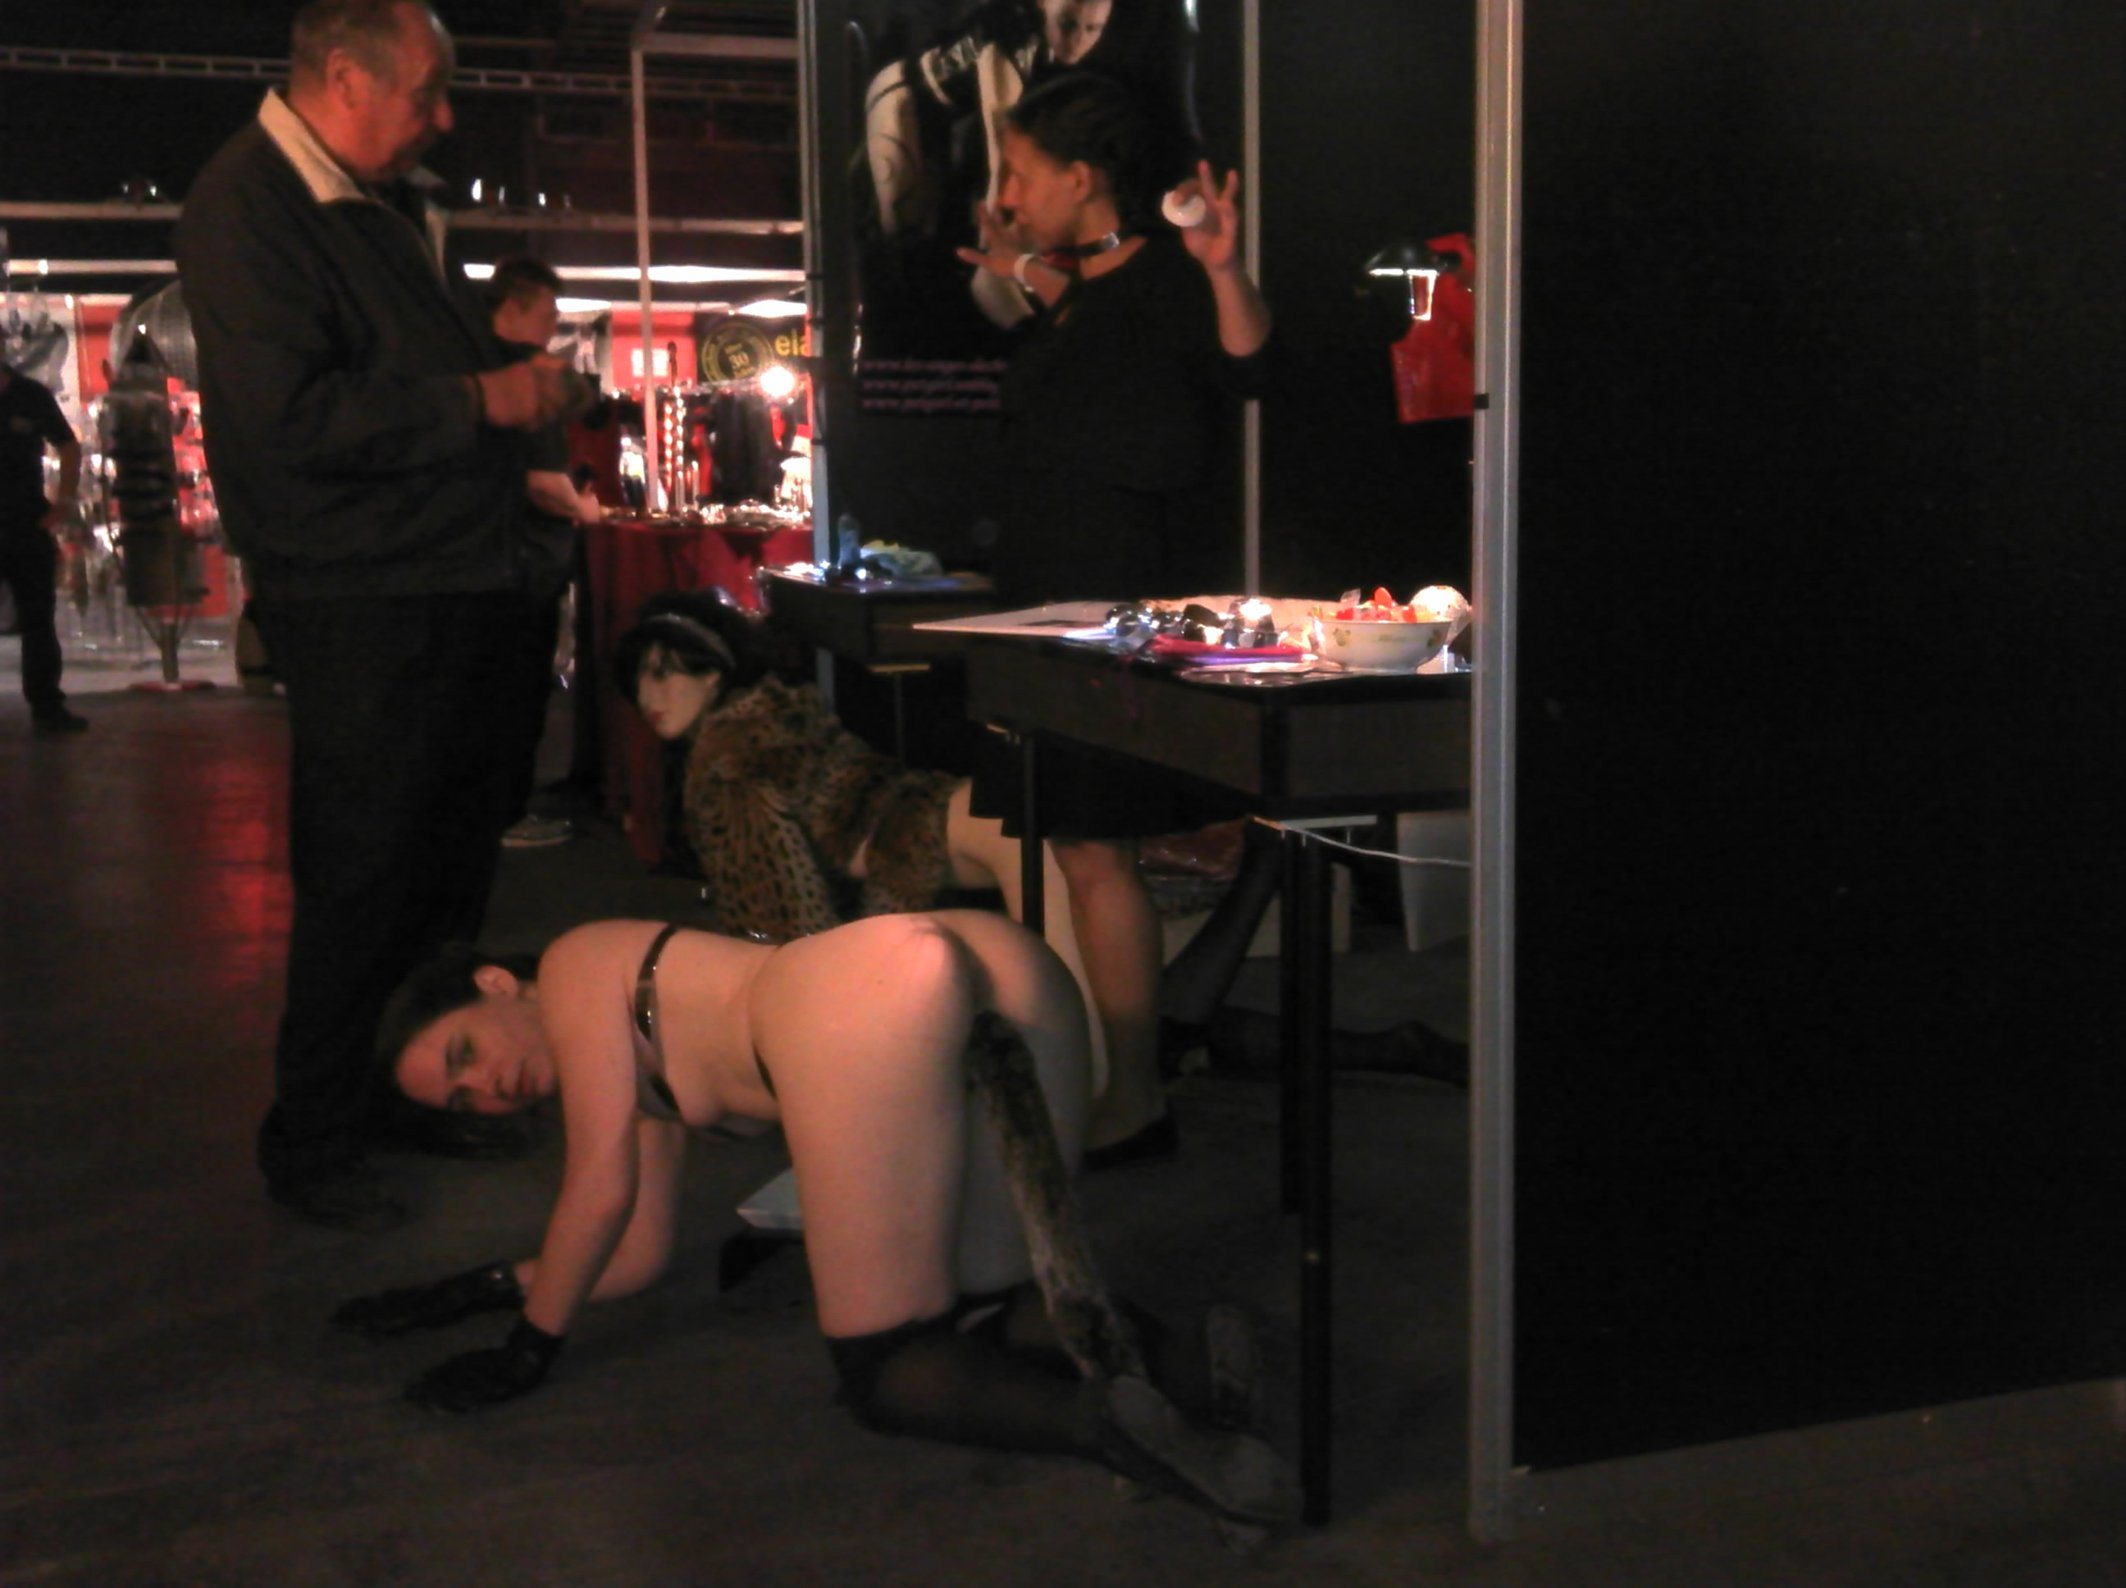 boundcon1.jpg